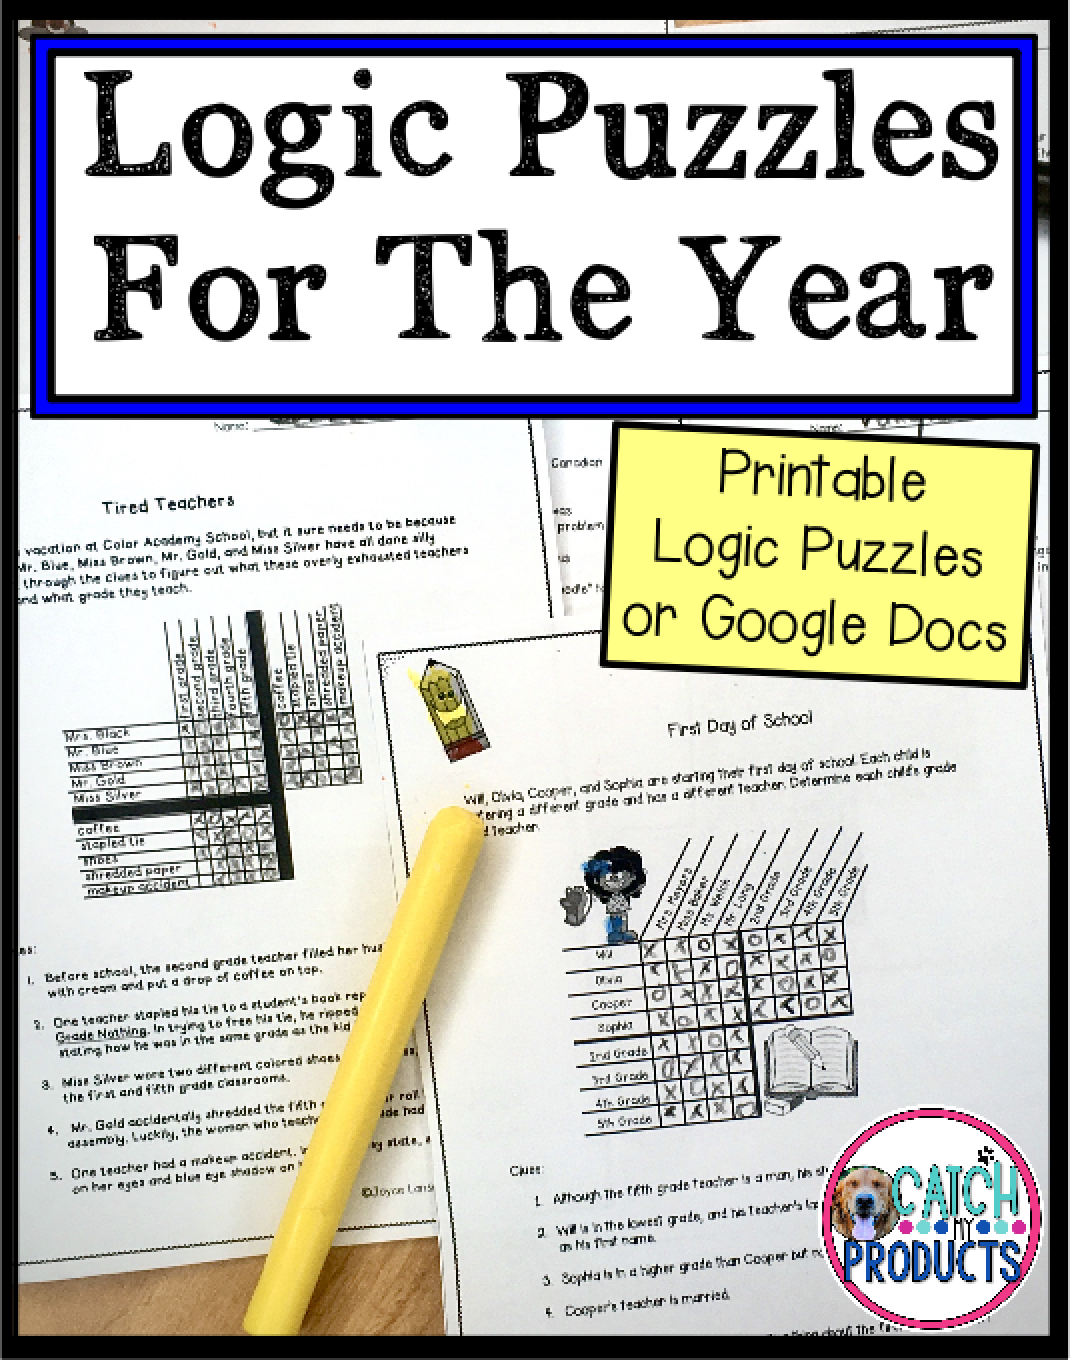 Digital Logic Puzzles Print And Docs For The Year